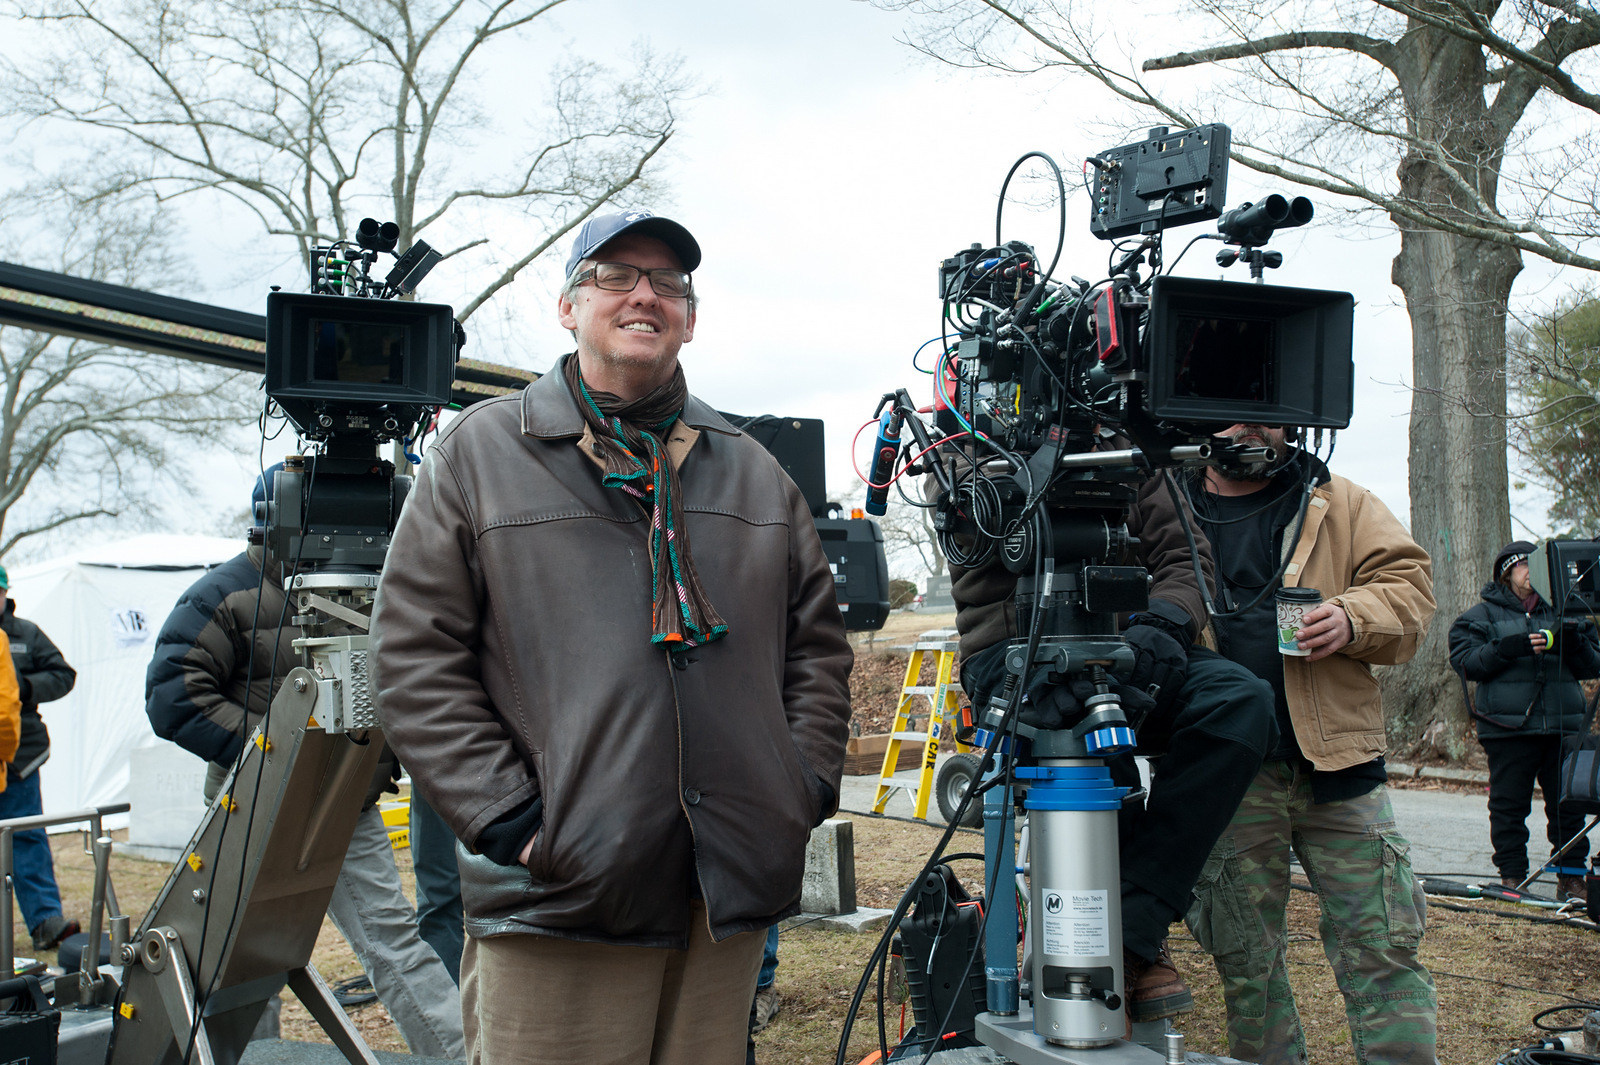 Adam McKay : Anchorman 2 (2014) Behind the Scenes